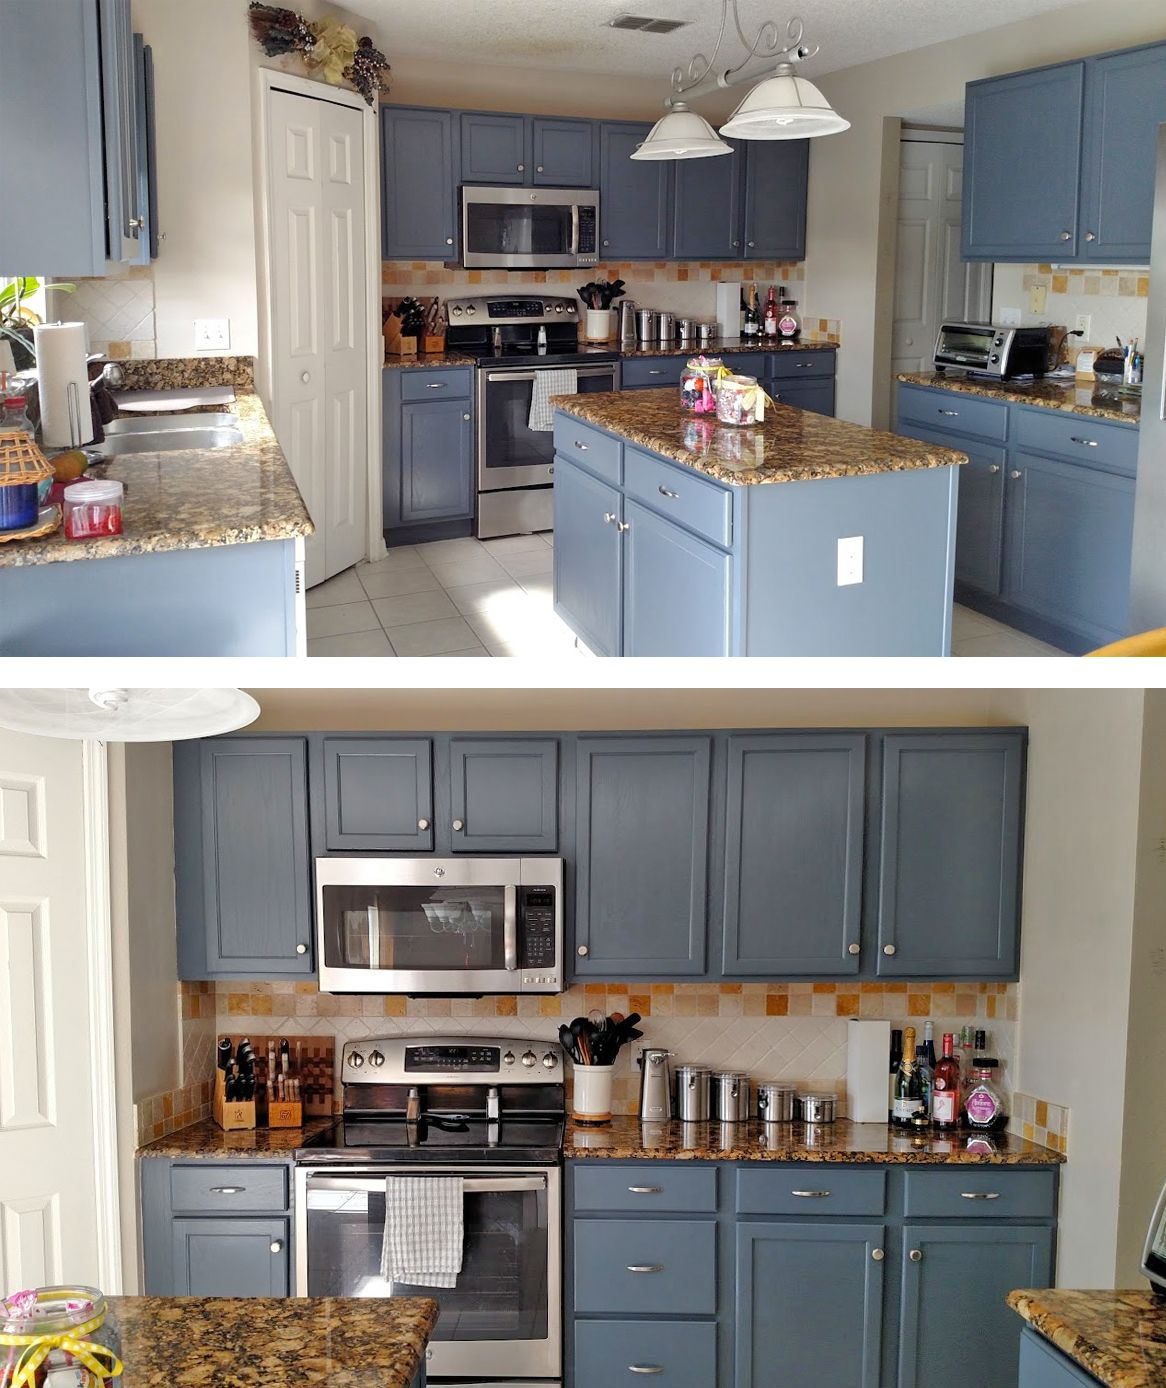 Check Out This Stunning Kitchen Makeover Completed By Donnalyn Ginther Using Gf S Gray Gel Stain